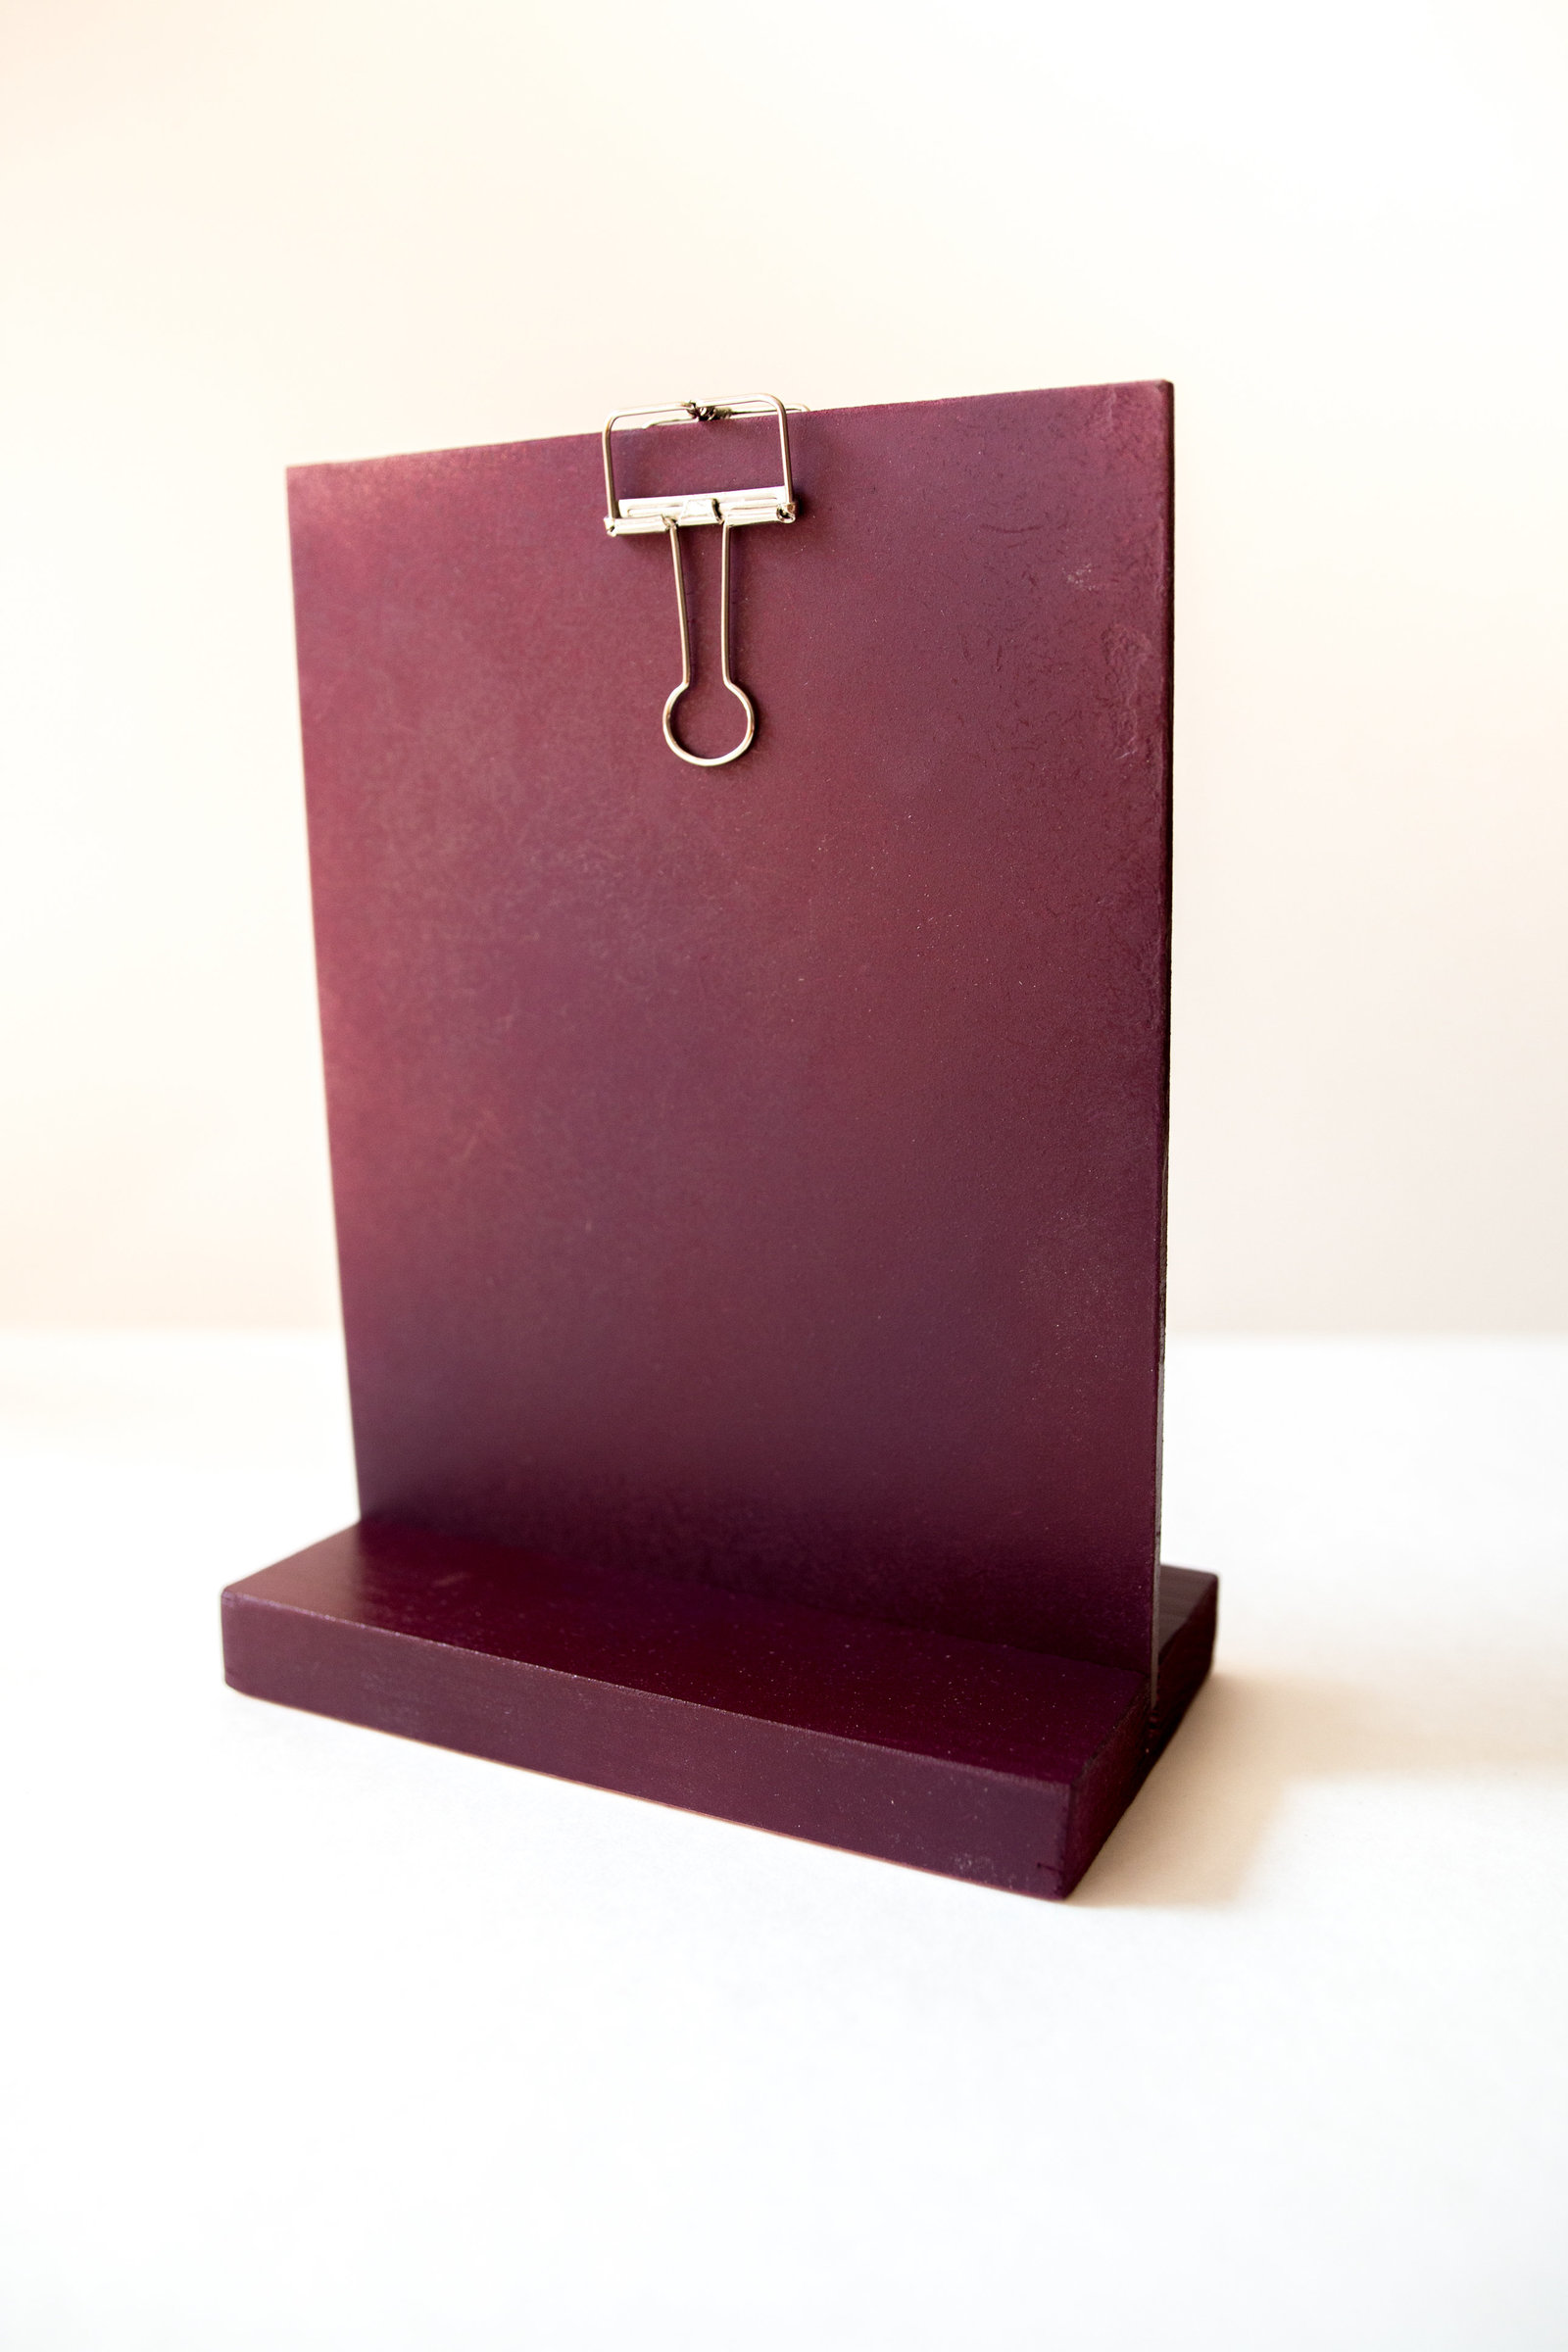 Mauve self standing wood clipboard for signs at weddings or events through Hue + FA rentals